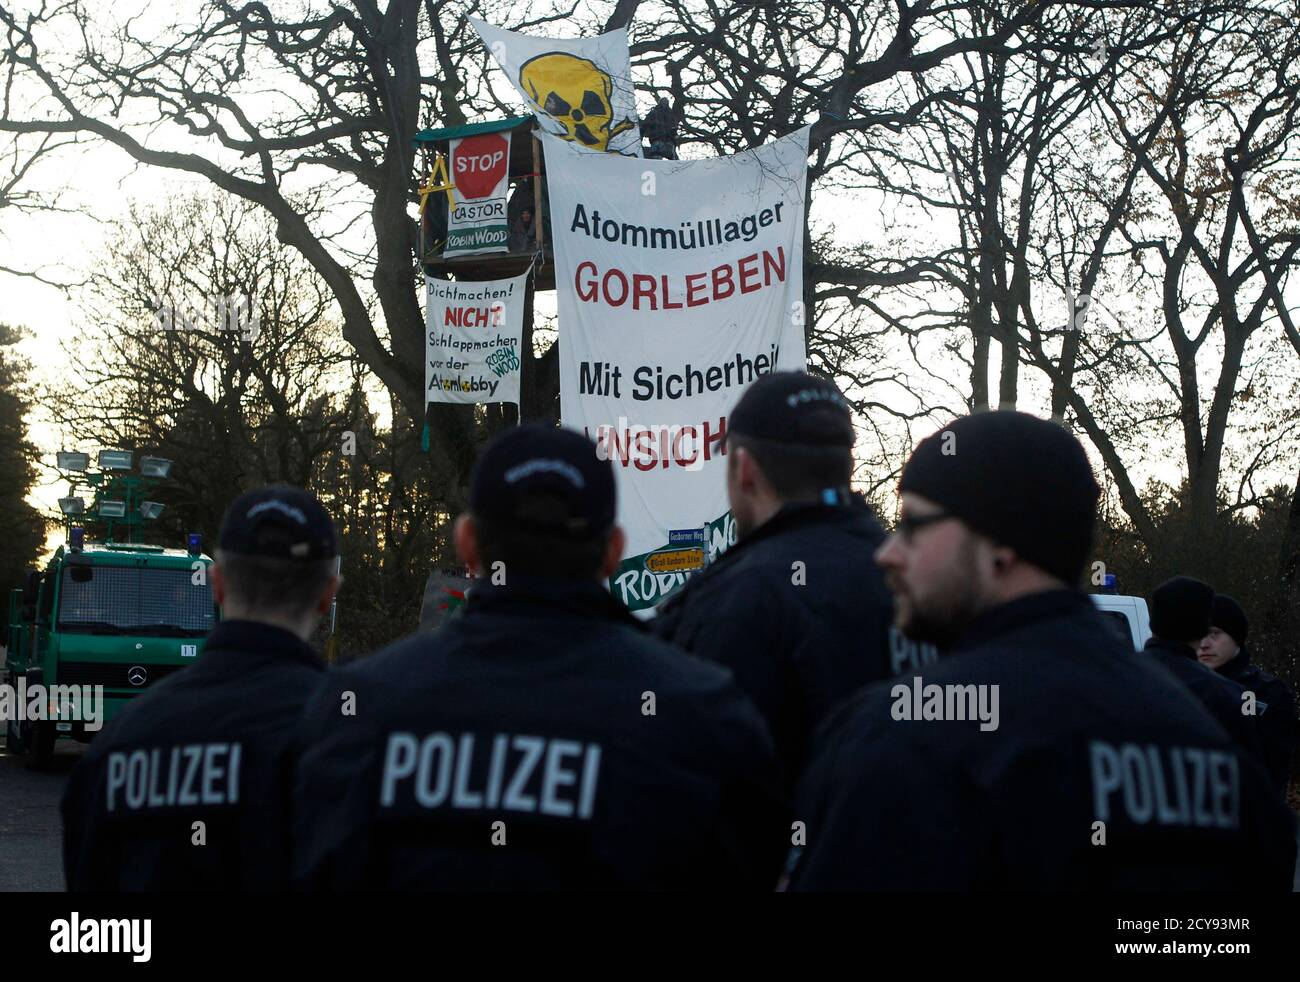 """An activist from the environmental organization Robin Wood observes the police from his tree house in Langendorf near Gorleben November 28, 2011. The controversial shipment of 11 Castor containers with spent German nuclear fuel reprocessed in France, will be loaded onto trucks in Dannenberg before its final transportation to the nearby intermediate storage facility in the northern Germany village of Gorleben. The banner reads: """"Radioactive waste storage Gorleben is not safe"""". REUTERS/Alex Domanski (GERMANY - Tags: ENVIRONMENT POLITICS CIVIL UNREST) Foto de stock"""